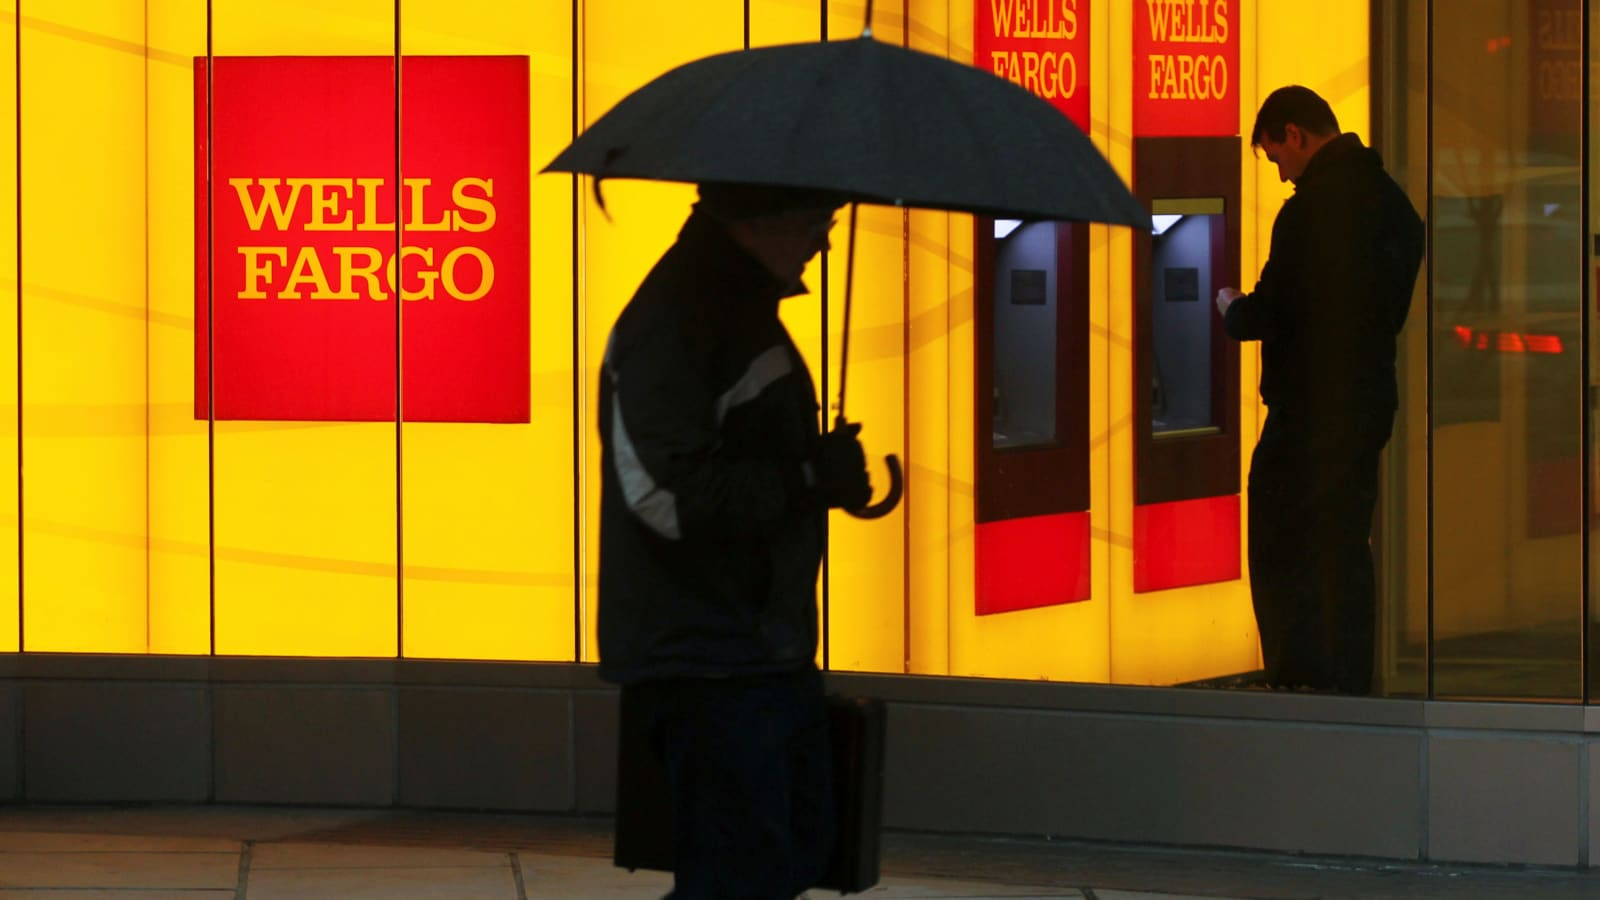 Wells Fargo is shutting down all personal line of credit accounts